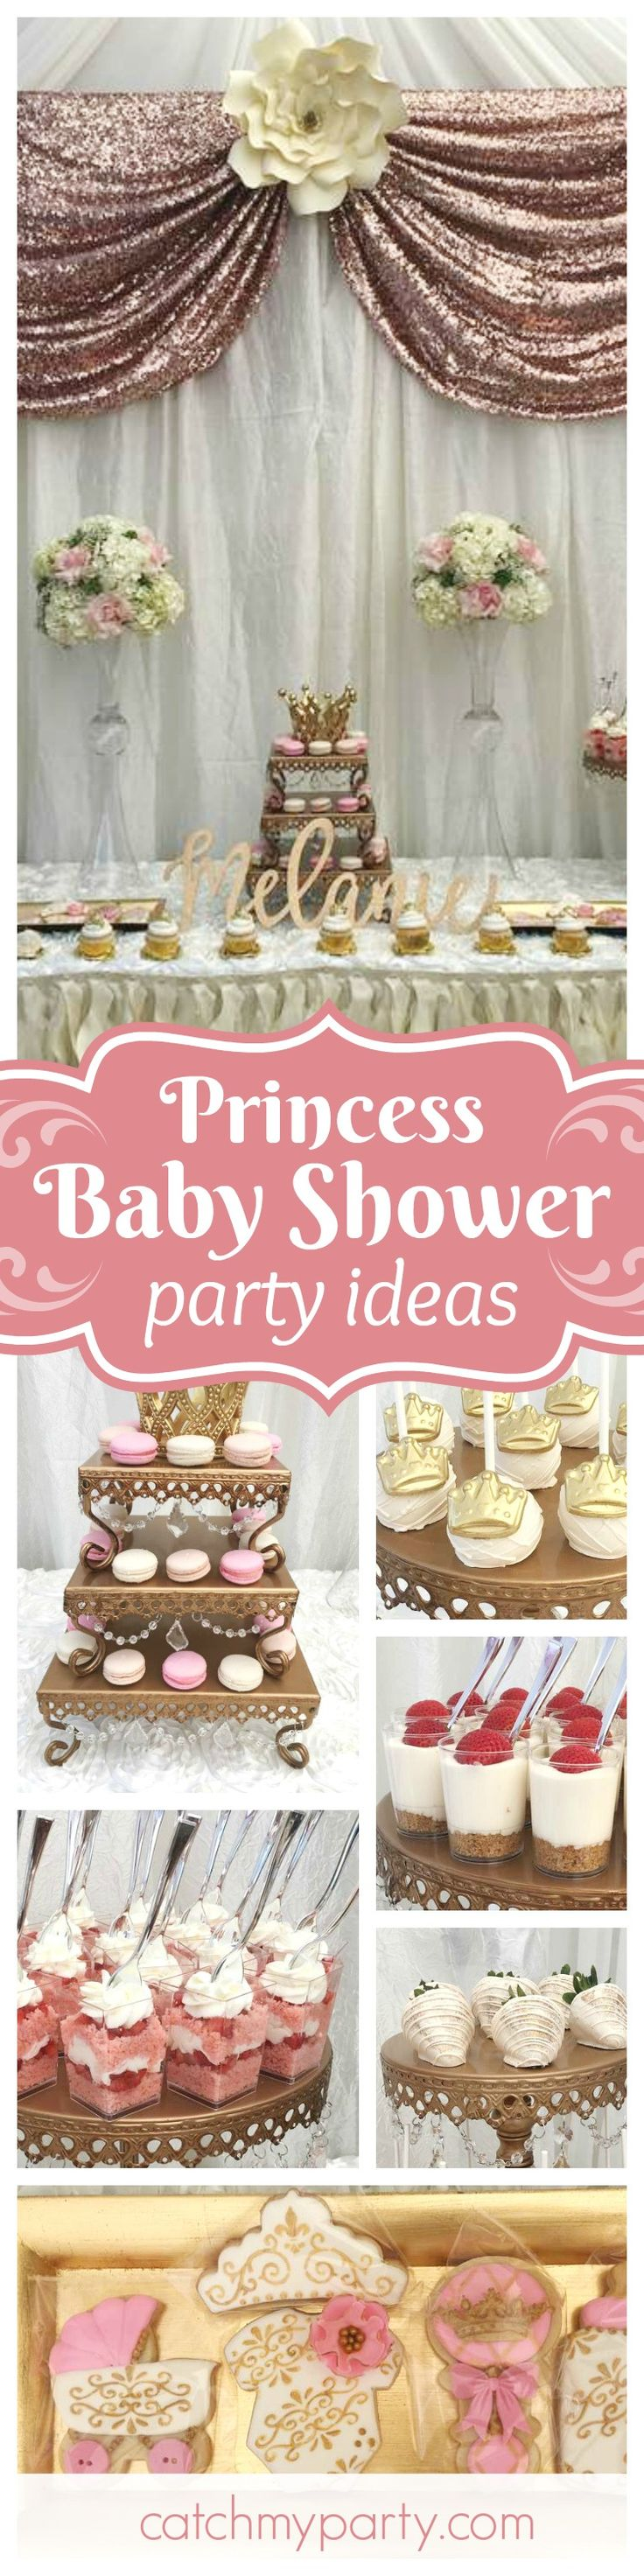 Take a look at this glamorous Princess themed Baby Shower! The decorated cookies are adorable!! See more parrty ideas and share yours at CatchMyParty.com